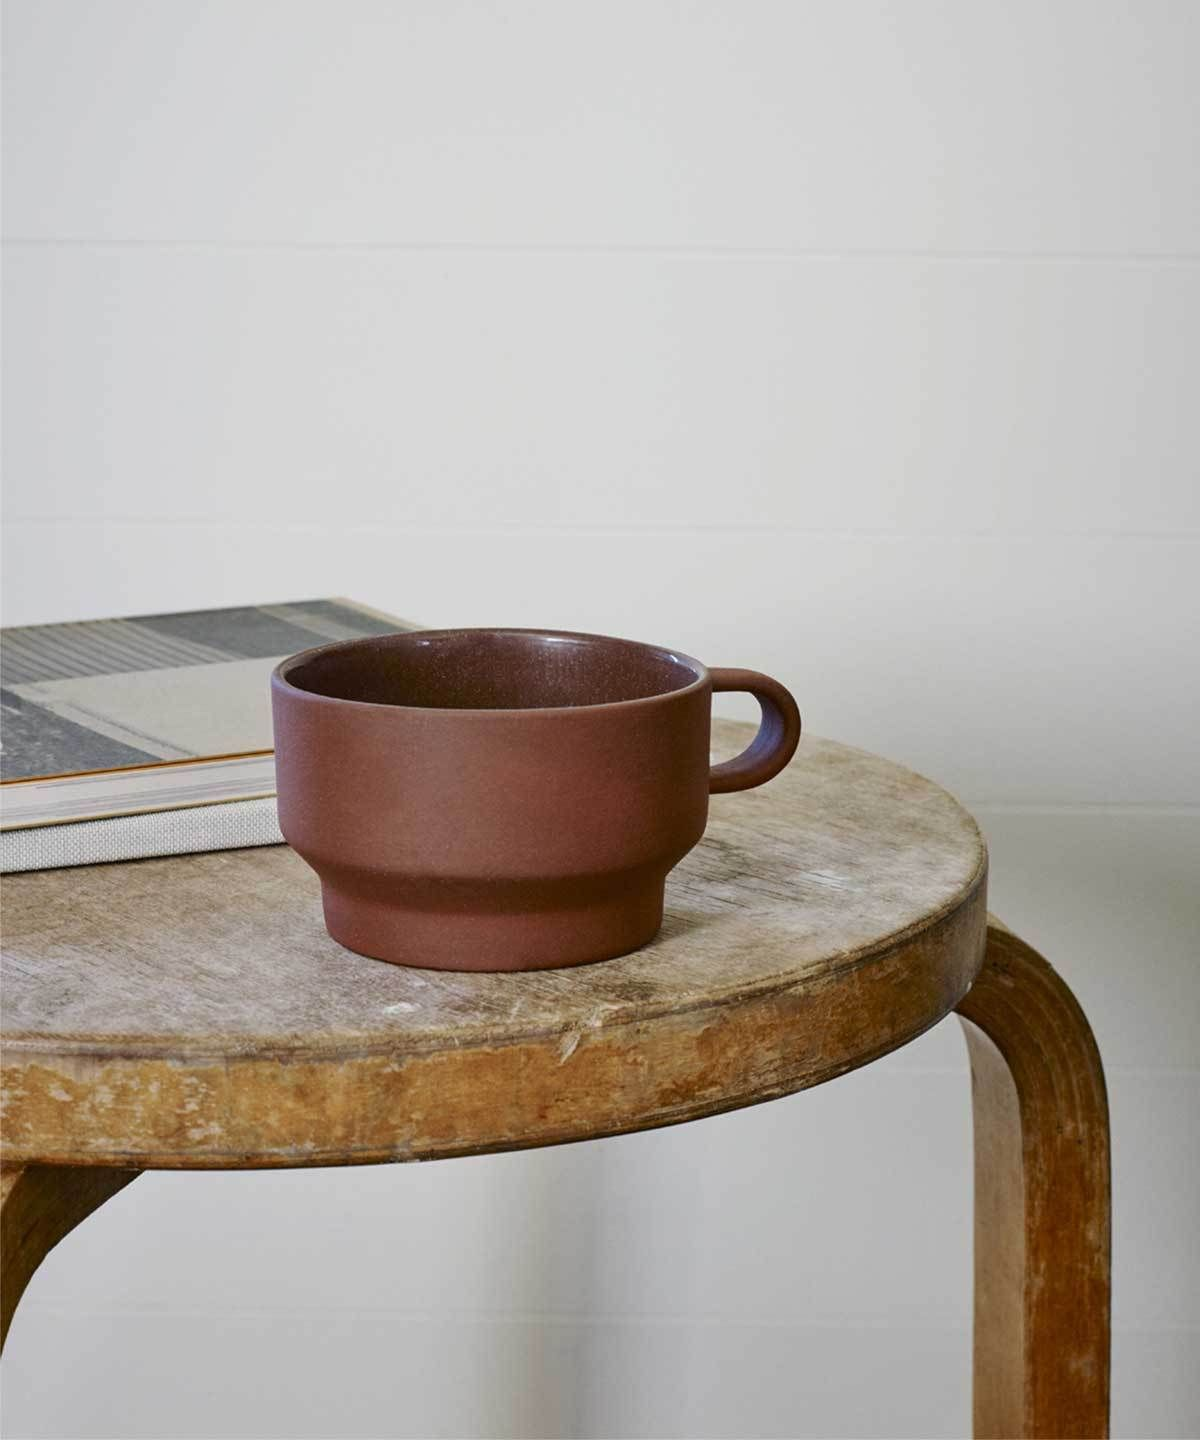 A Danish-designed tea set meant to enhance your soothing daily ritual.  The name of the design duo Stilleben translates to 'still life' which makes sense when considering their pieces feel closer to works of art than to home goods.  From Skagerak, a family-owned Scandinavian company with over four decades of experience creating sustainable furniture and home goods.  #tablewaredesign #kitchenideas #kitcheninteriors #kitchendecor #diningtabledecor